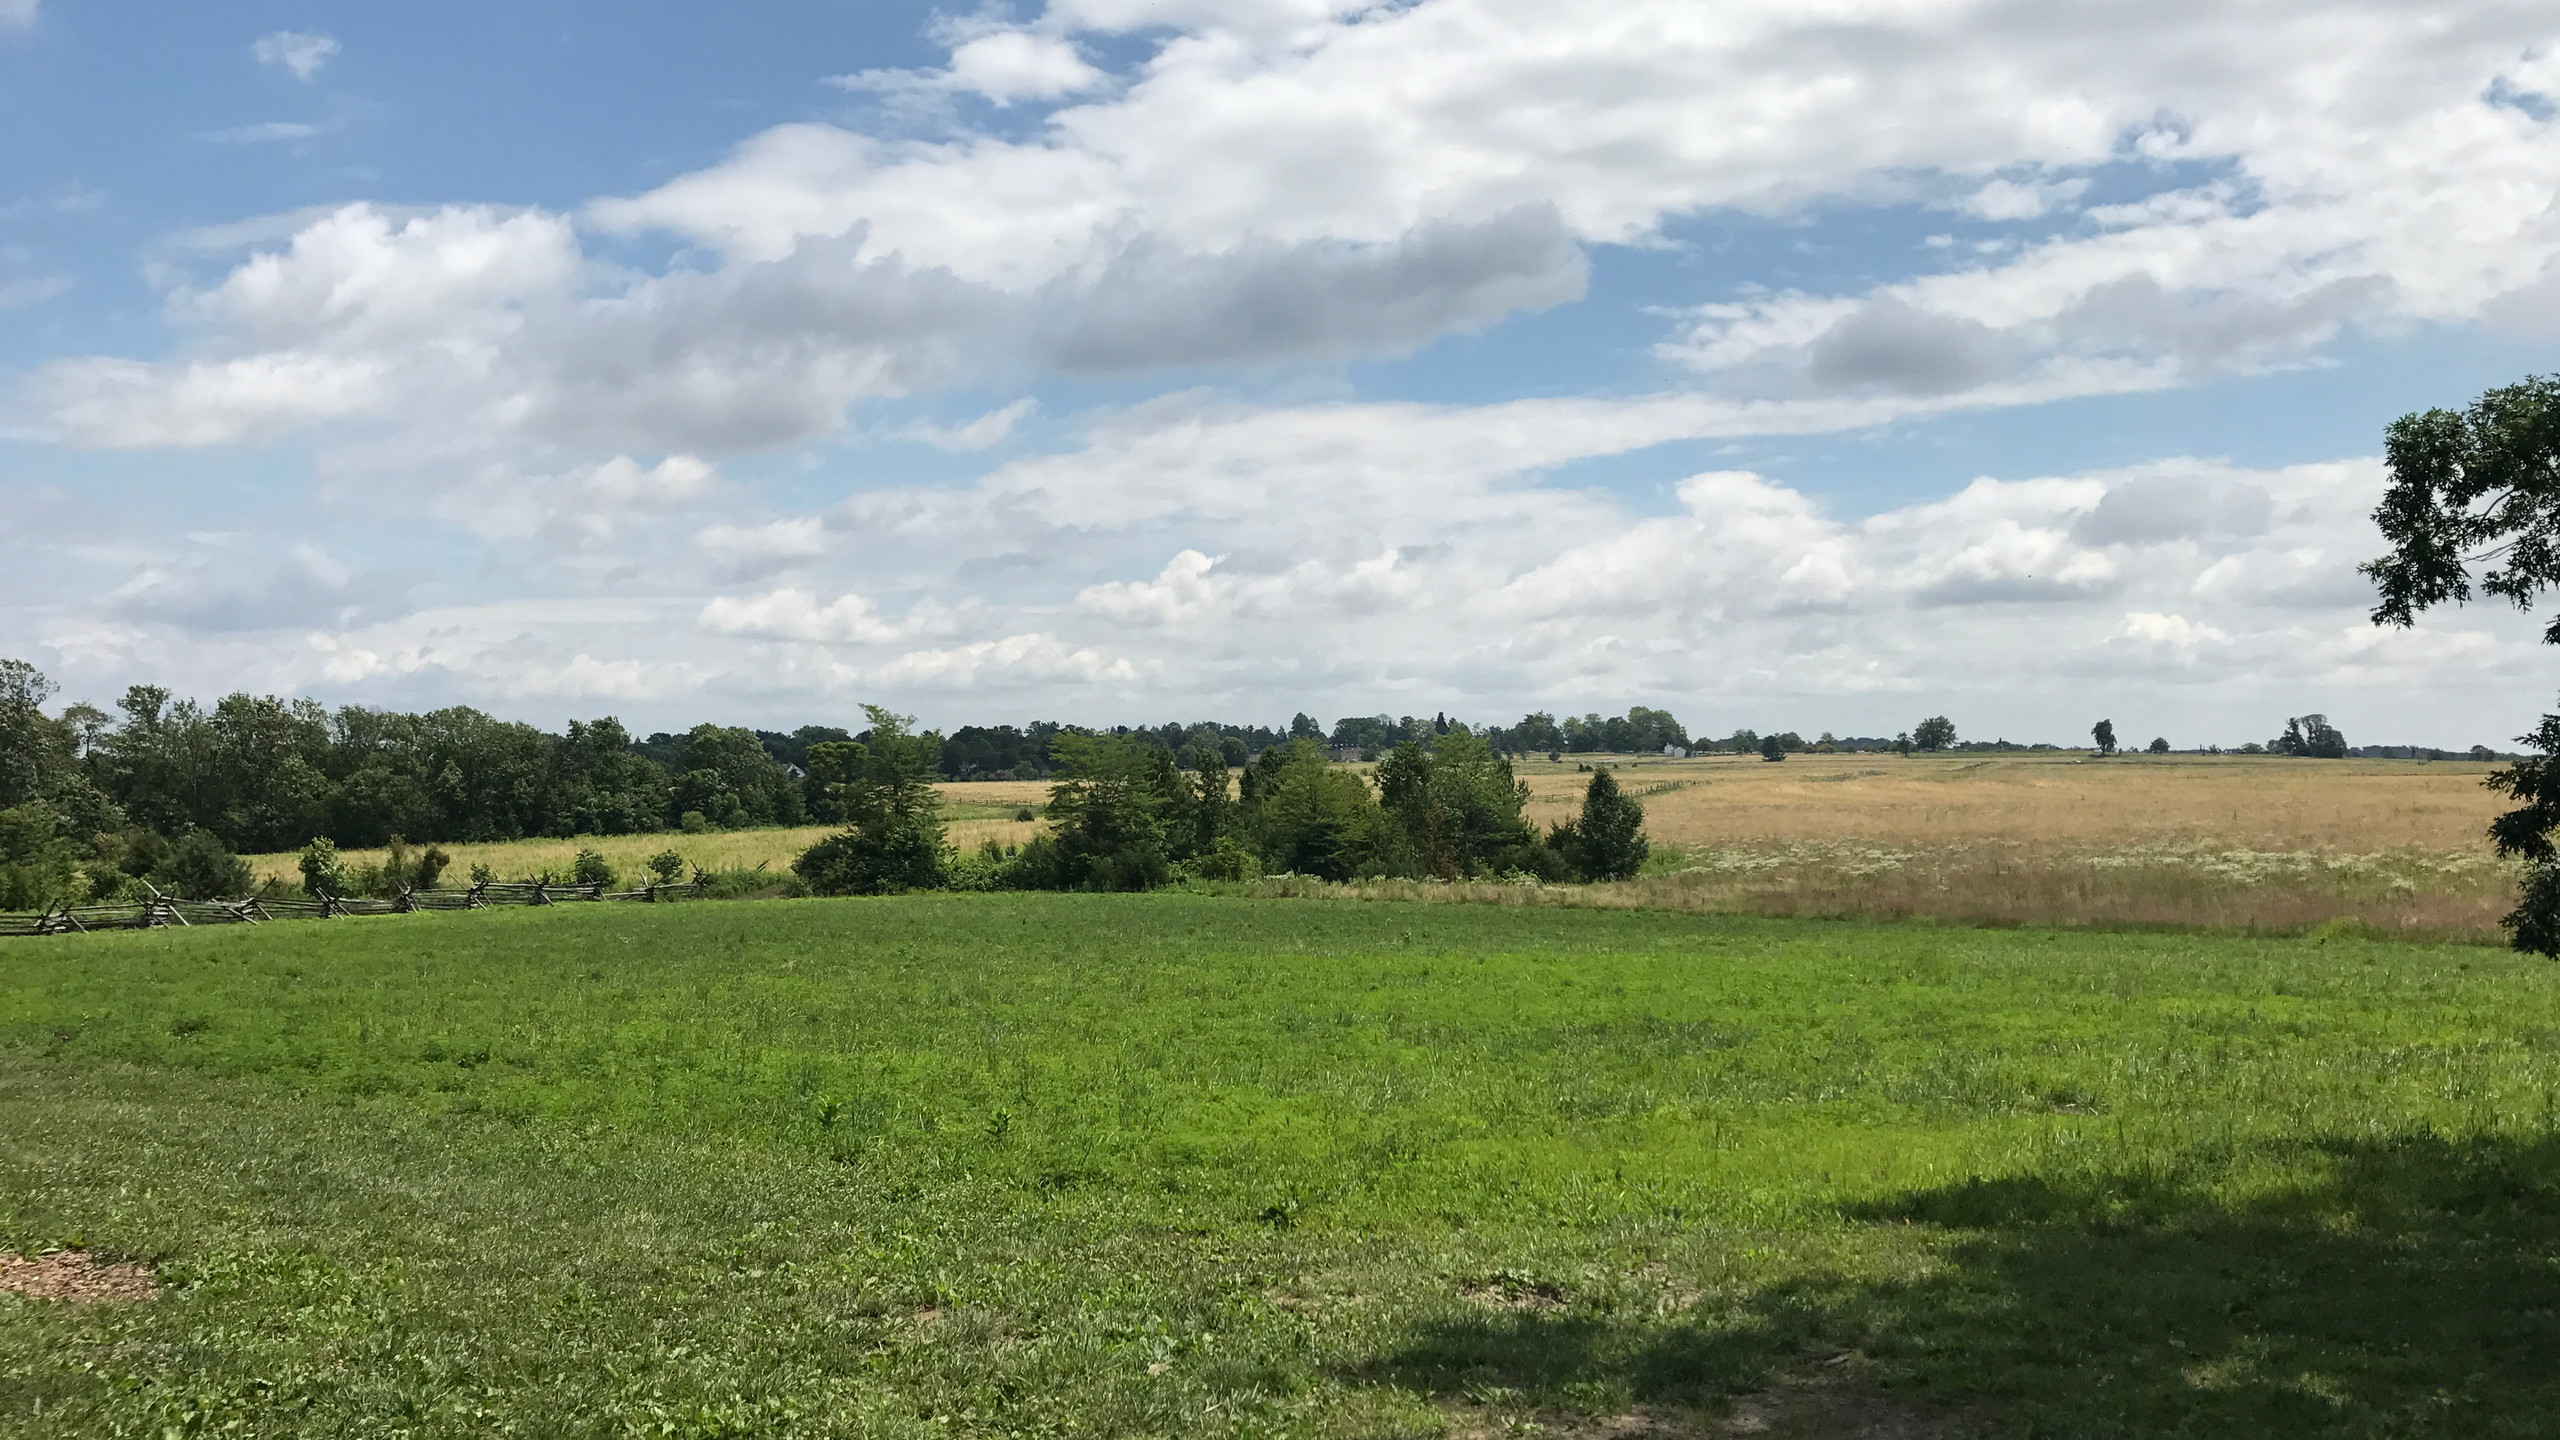 Starting Point of Pickett's Charge